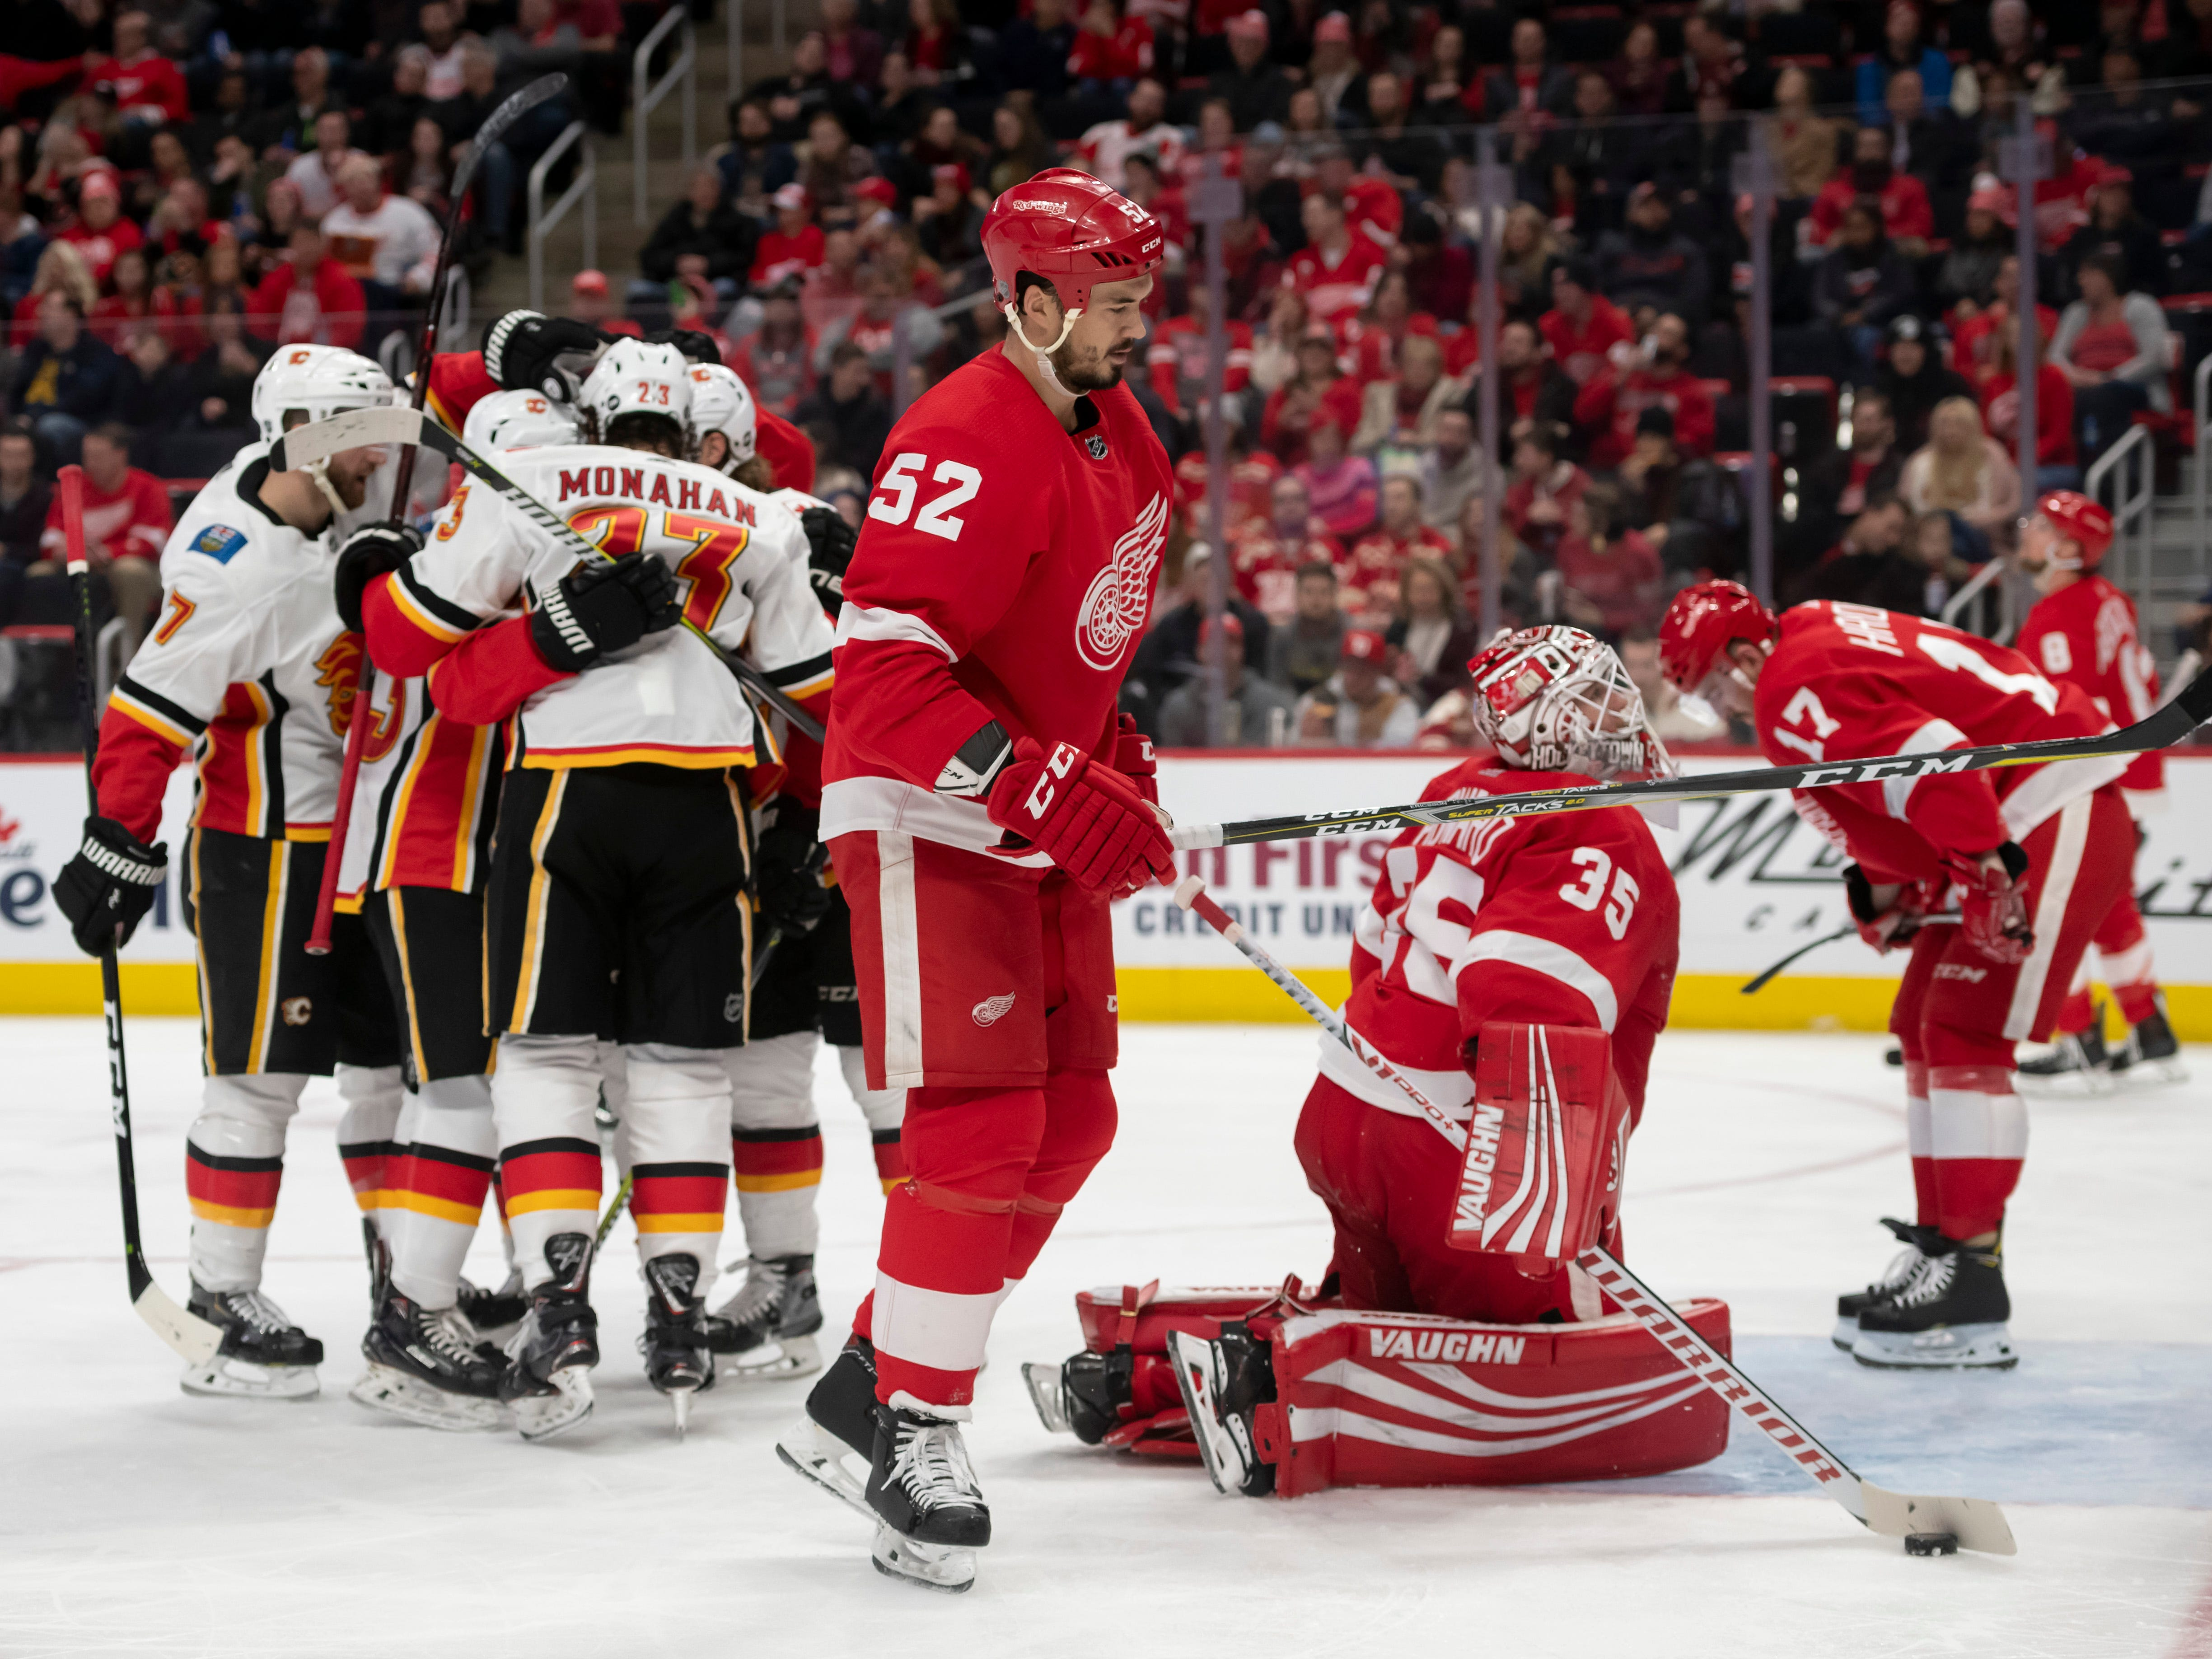 The Red Wings look away as Calgary celebrates a goal by center Sean Monahan in the second period.